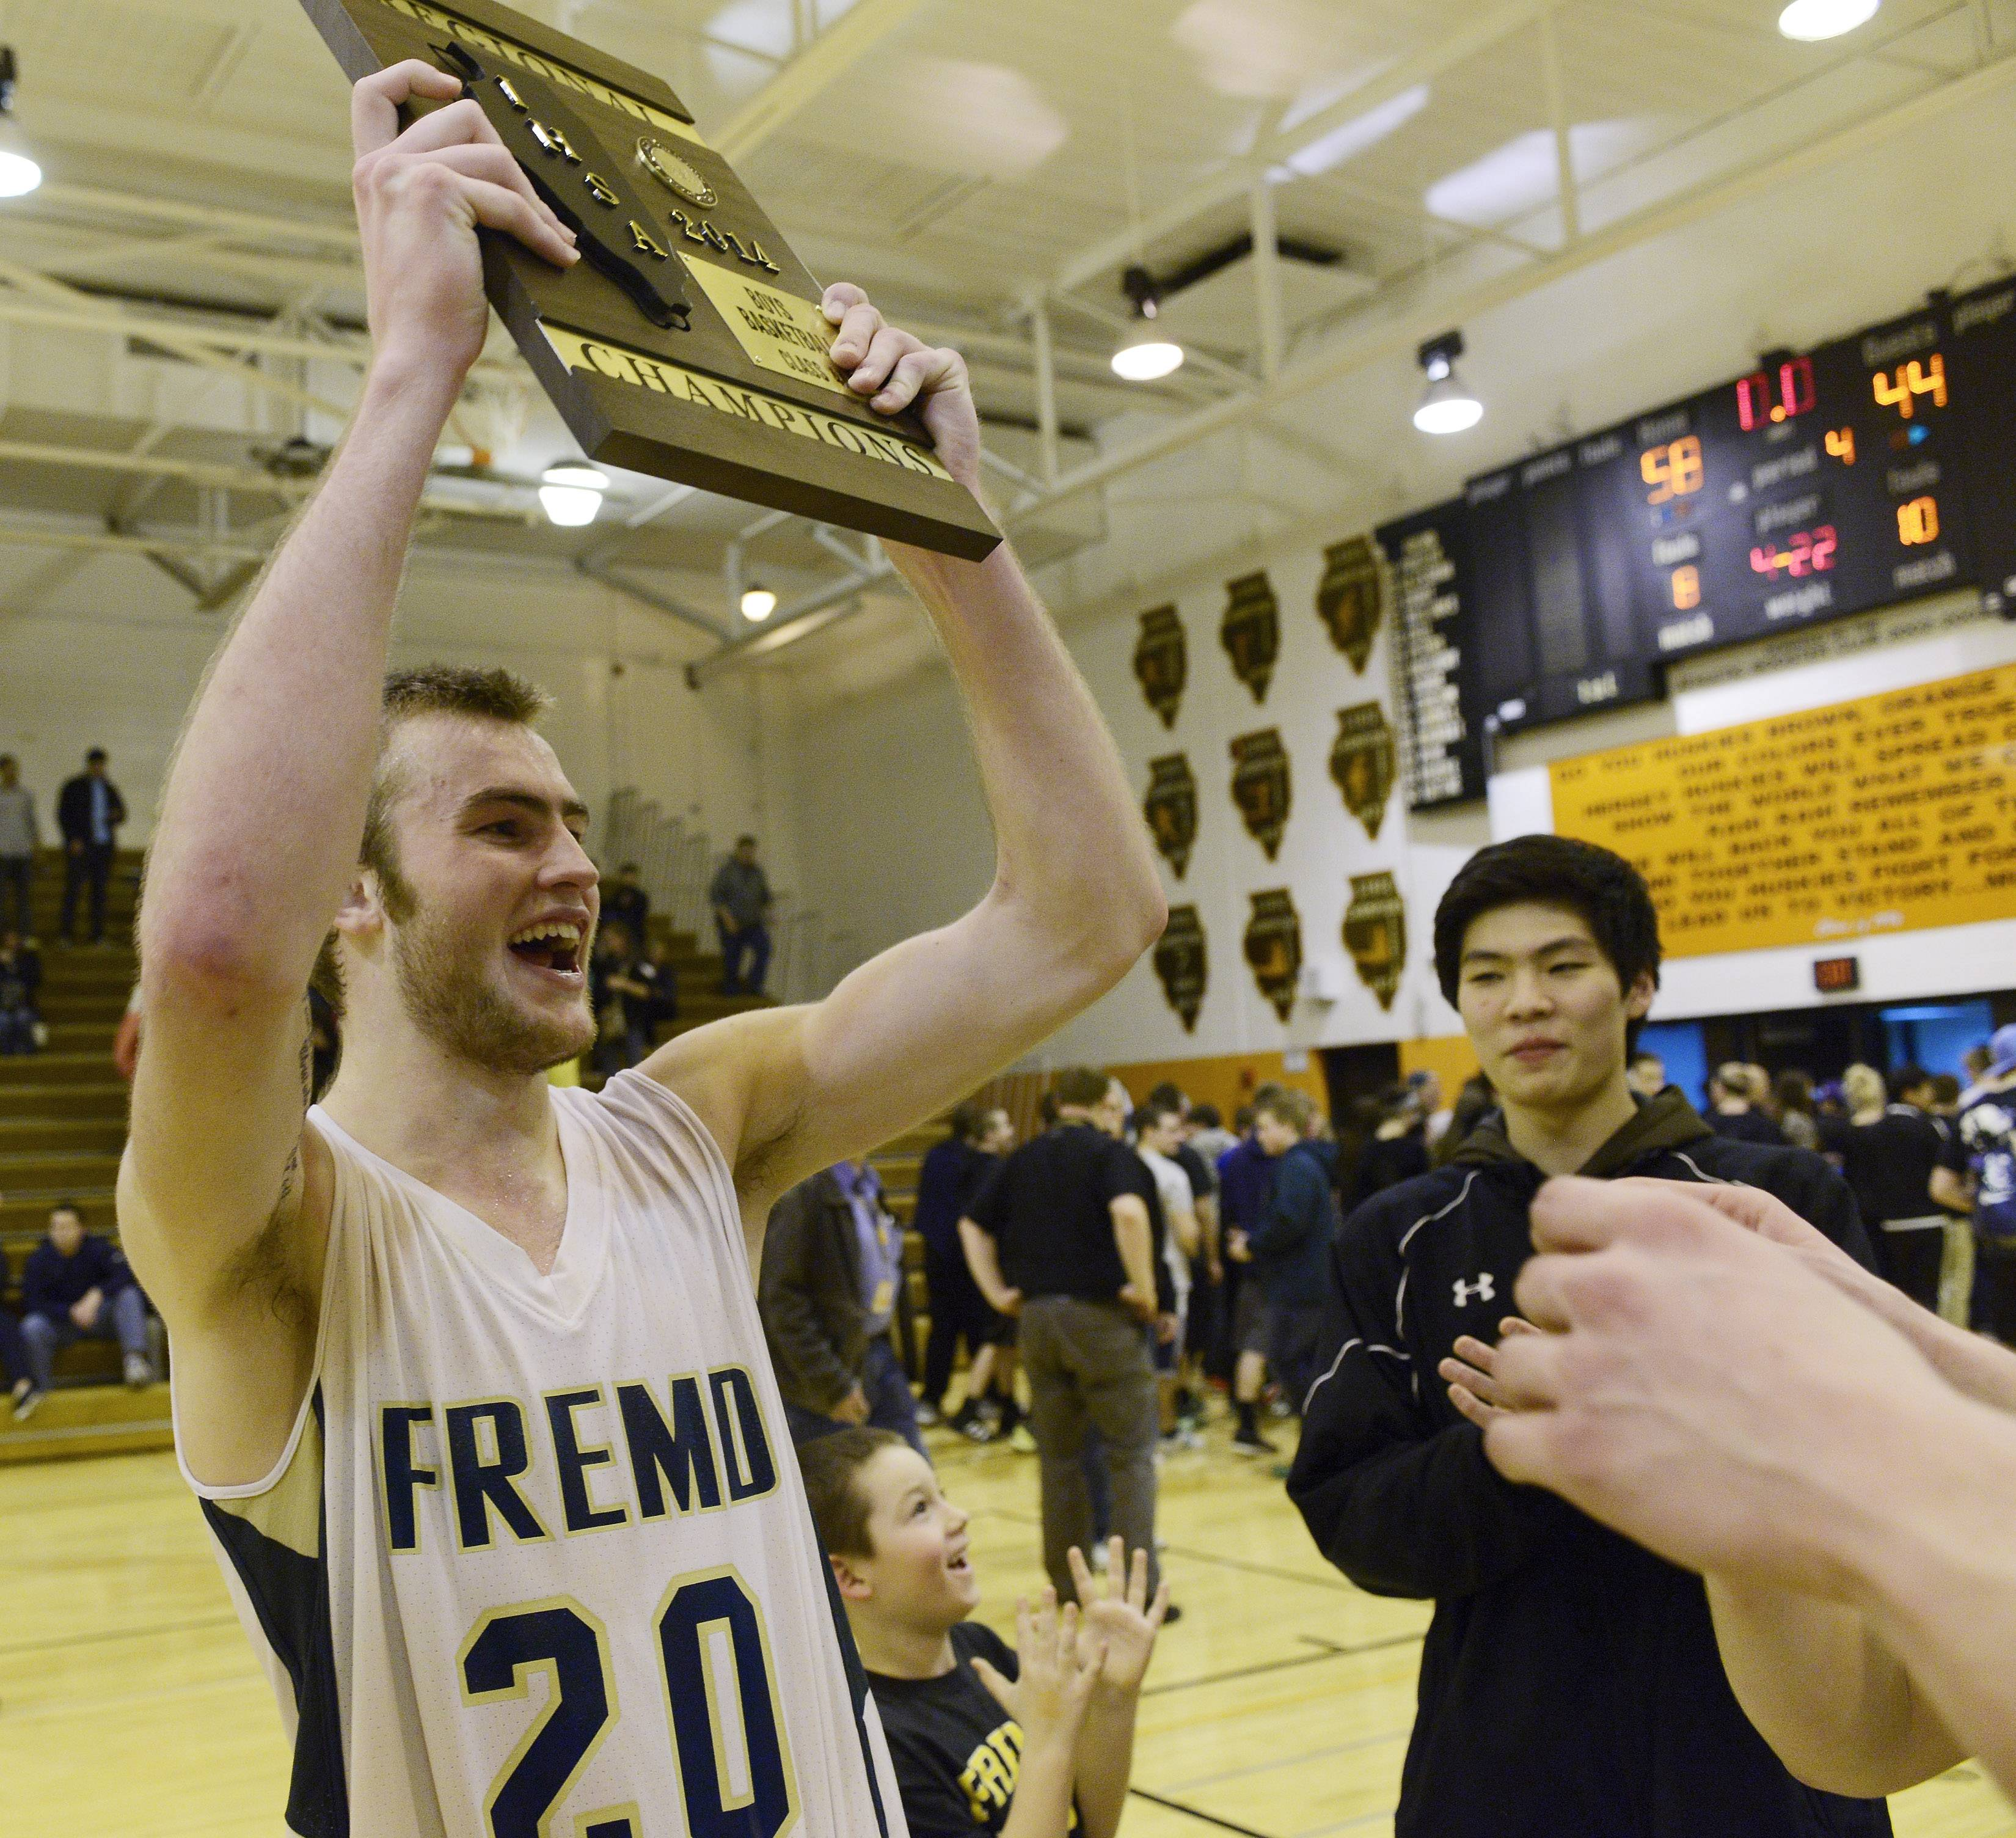 Fremd's Riley Glassmann holds up the championship plaque following Friday's 58-44 victory over Lake Zurich .